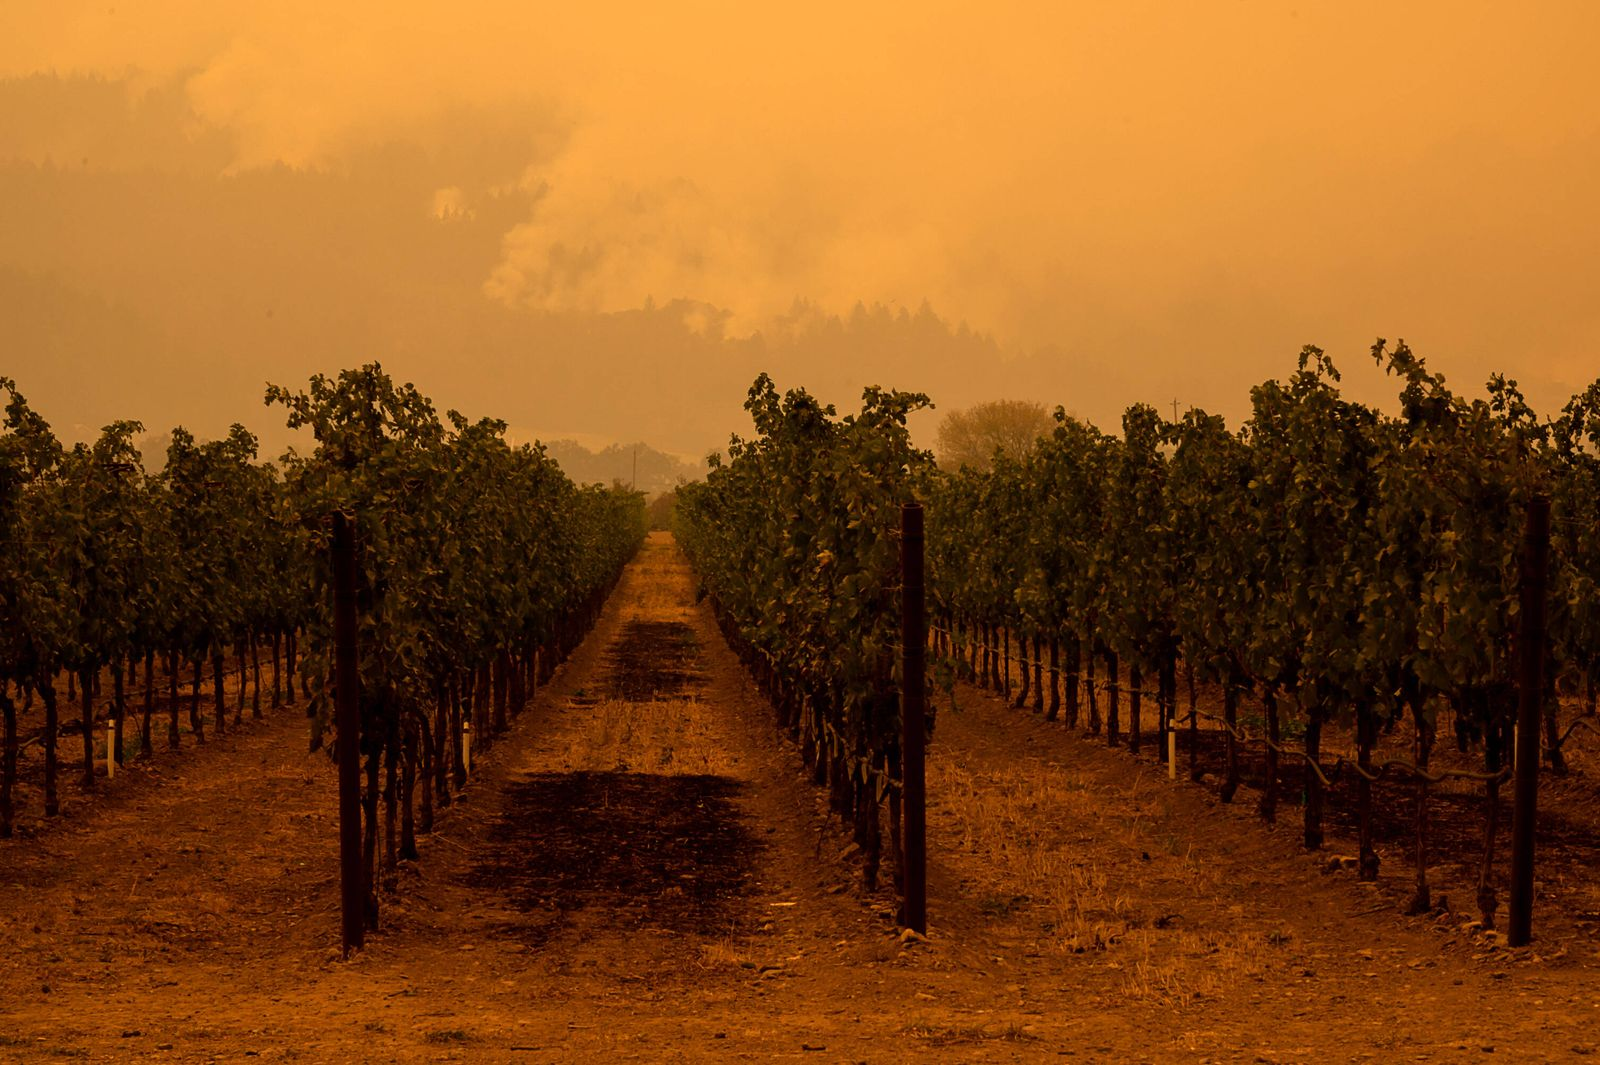 September 28, 2020, St. Helena, CA, USA: Hot spots burn in the hills above a vineyard looking west from Silverado Trail